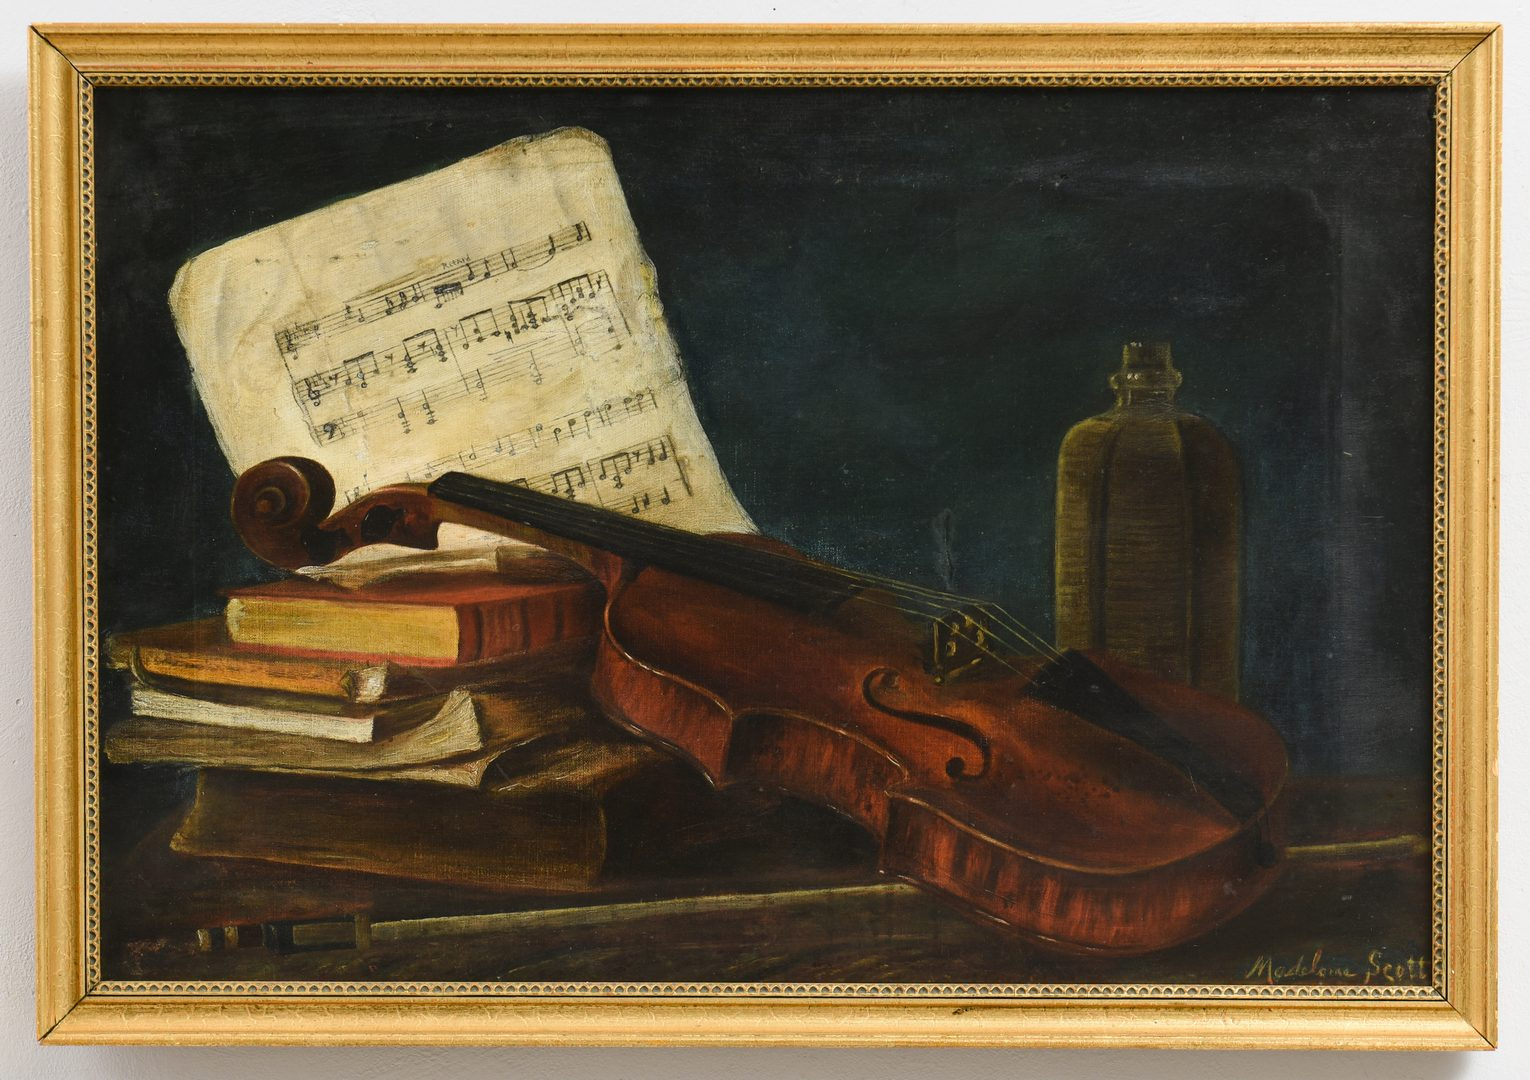 Lot 207: Madeline Scott, East TN O/C Still Life